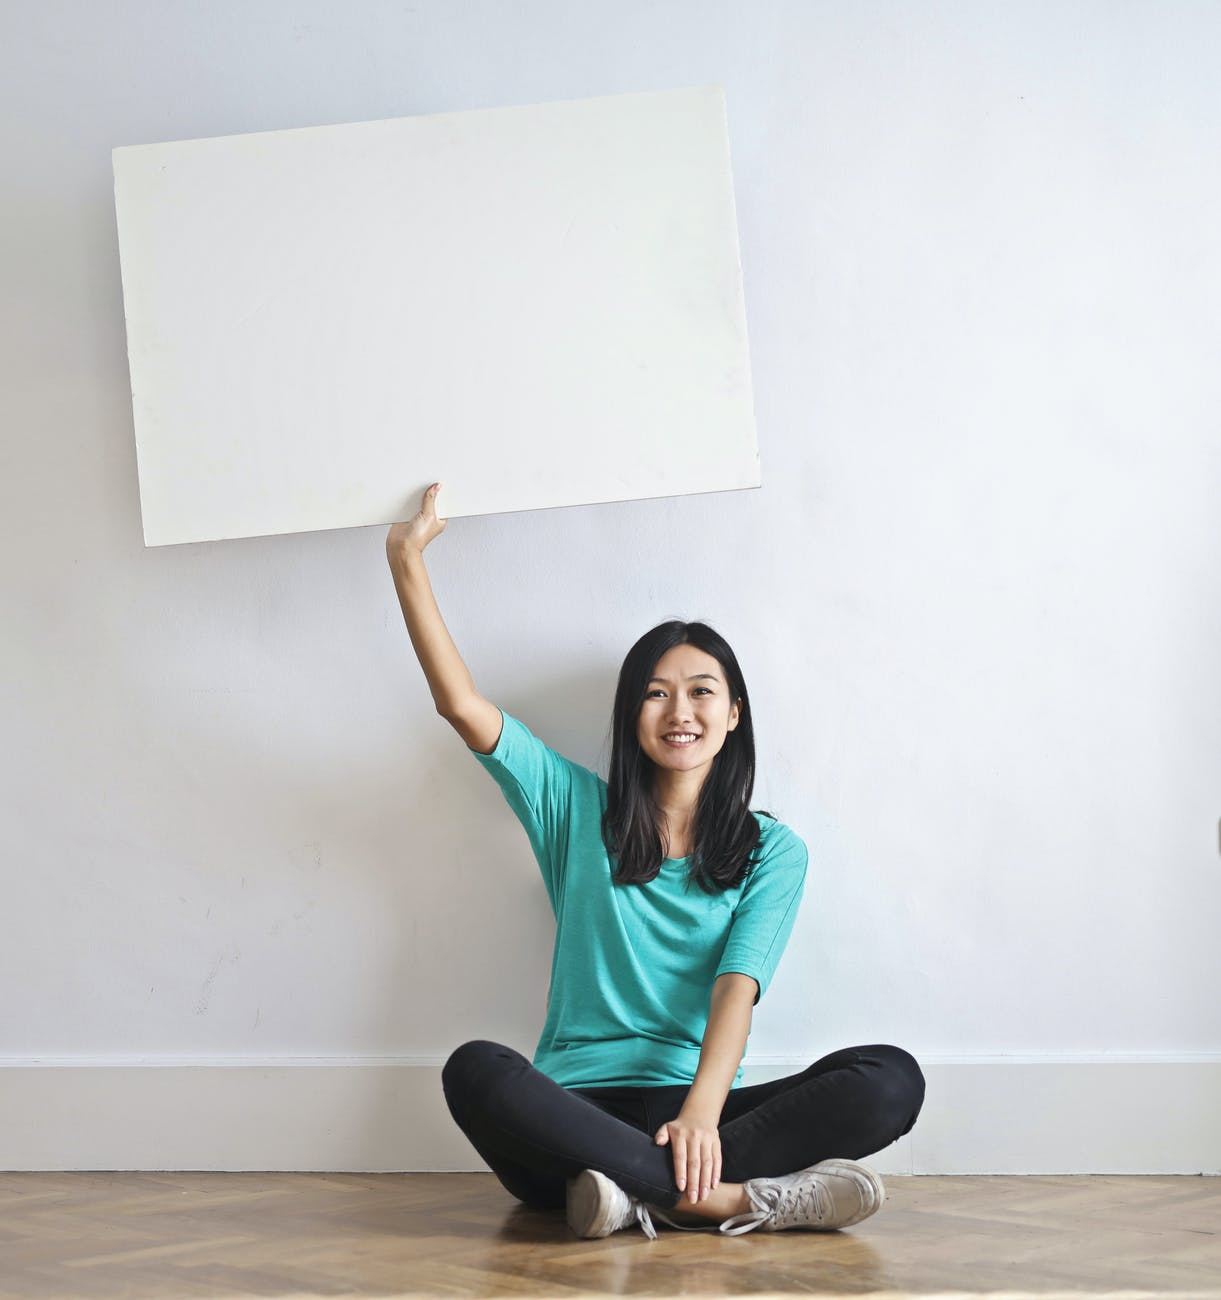 Woman holding up blank, white poster paper.